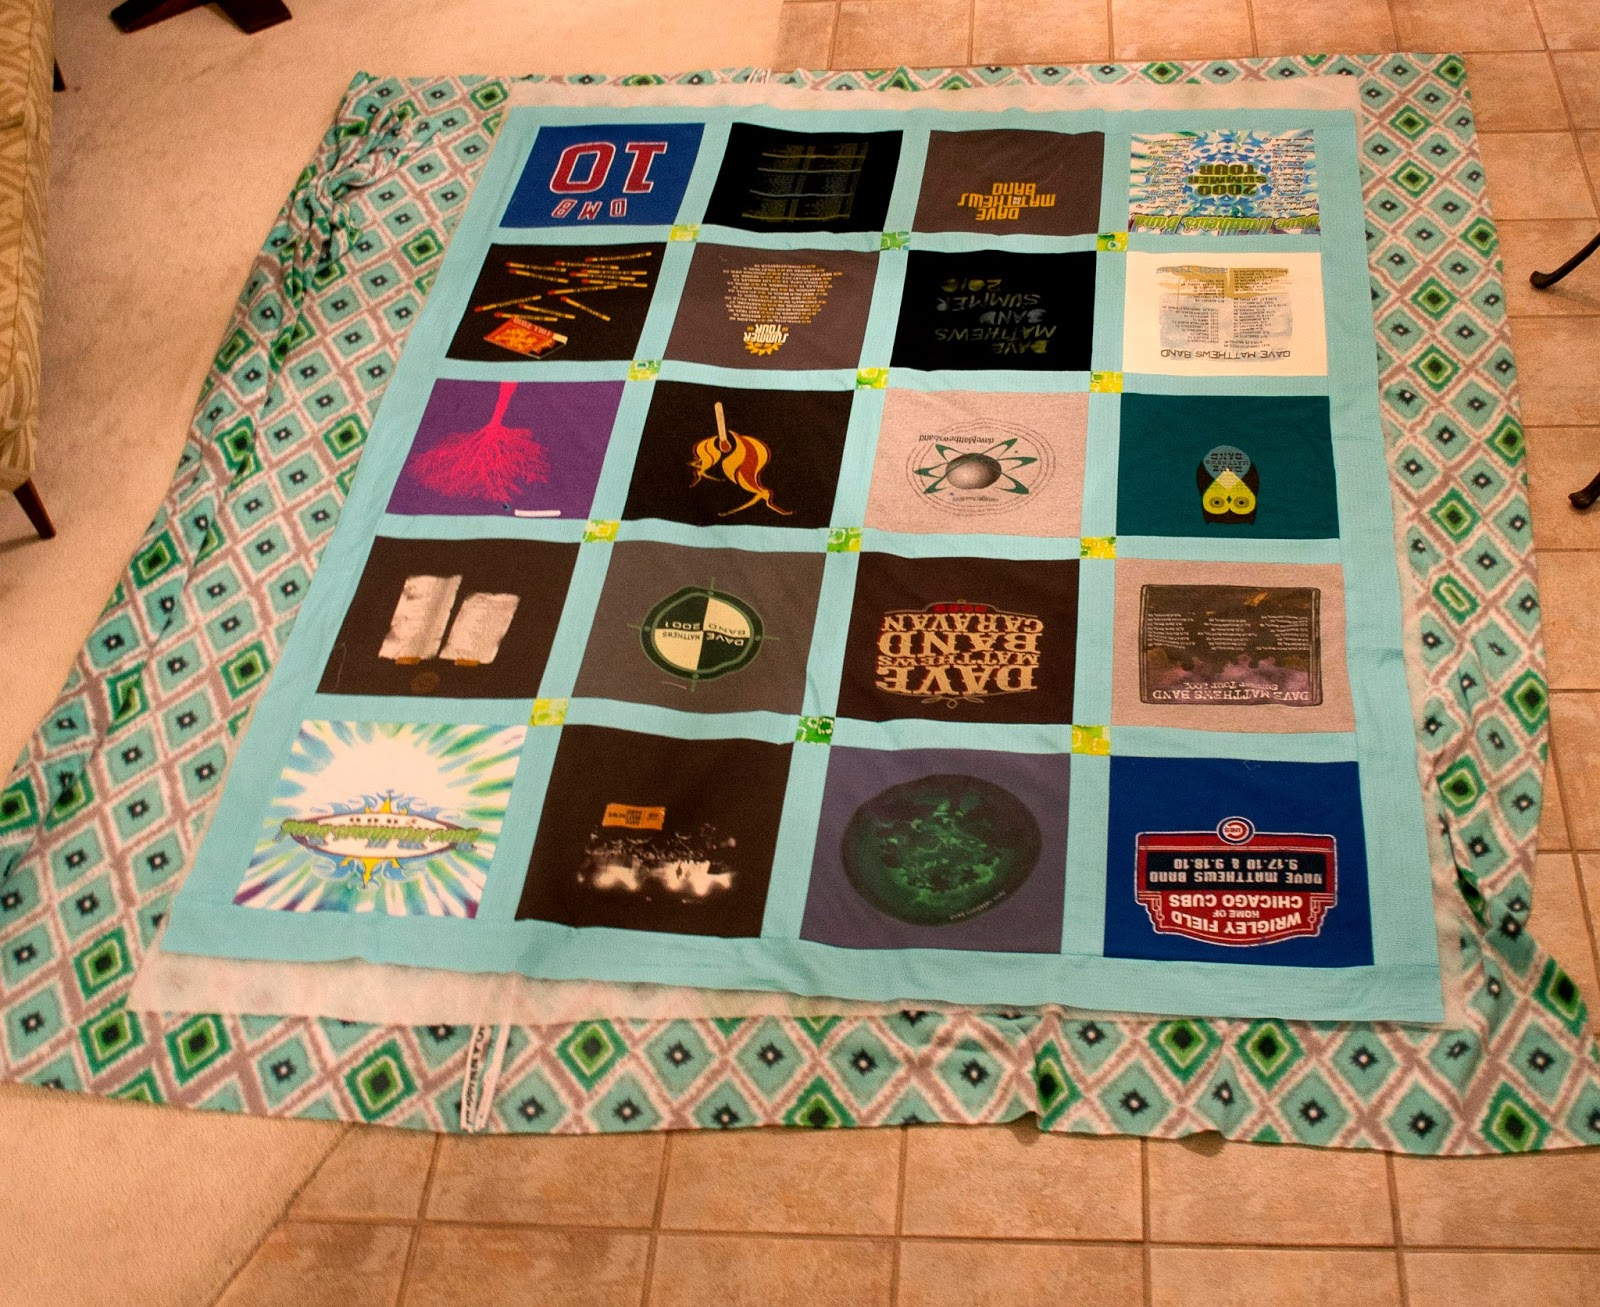 Making Quilt Out Old Clothes